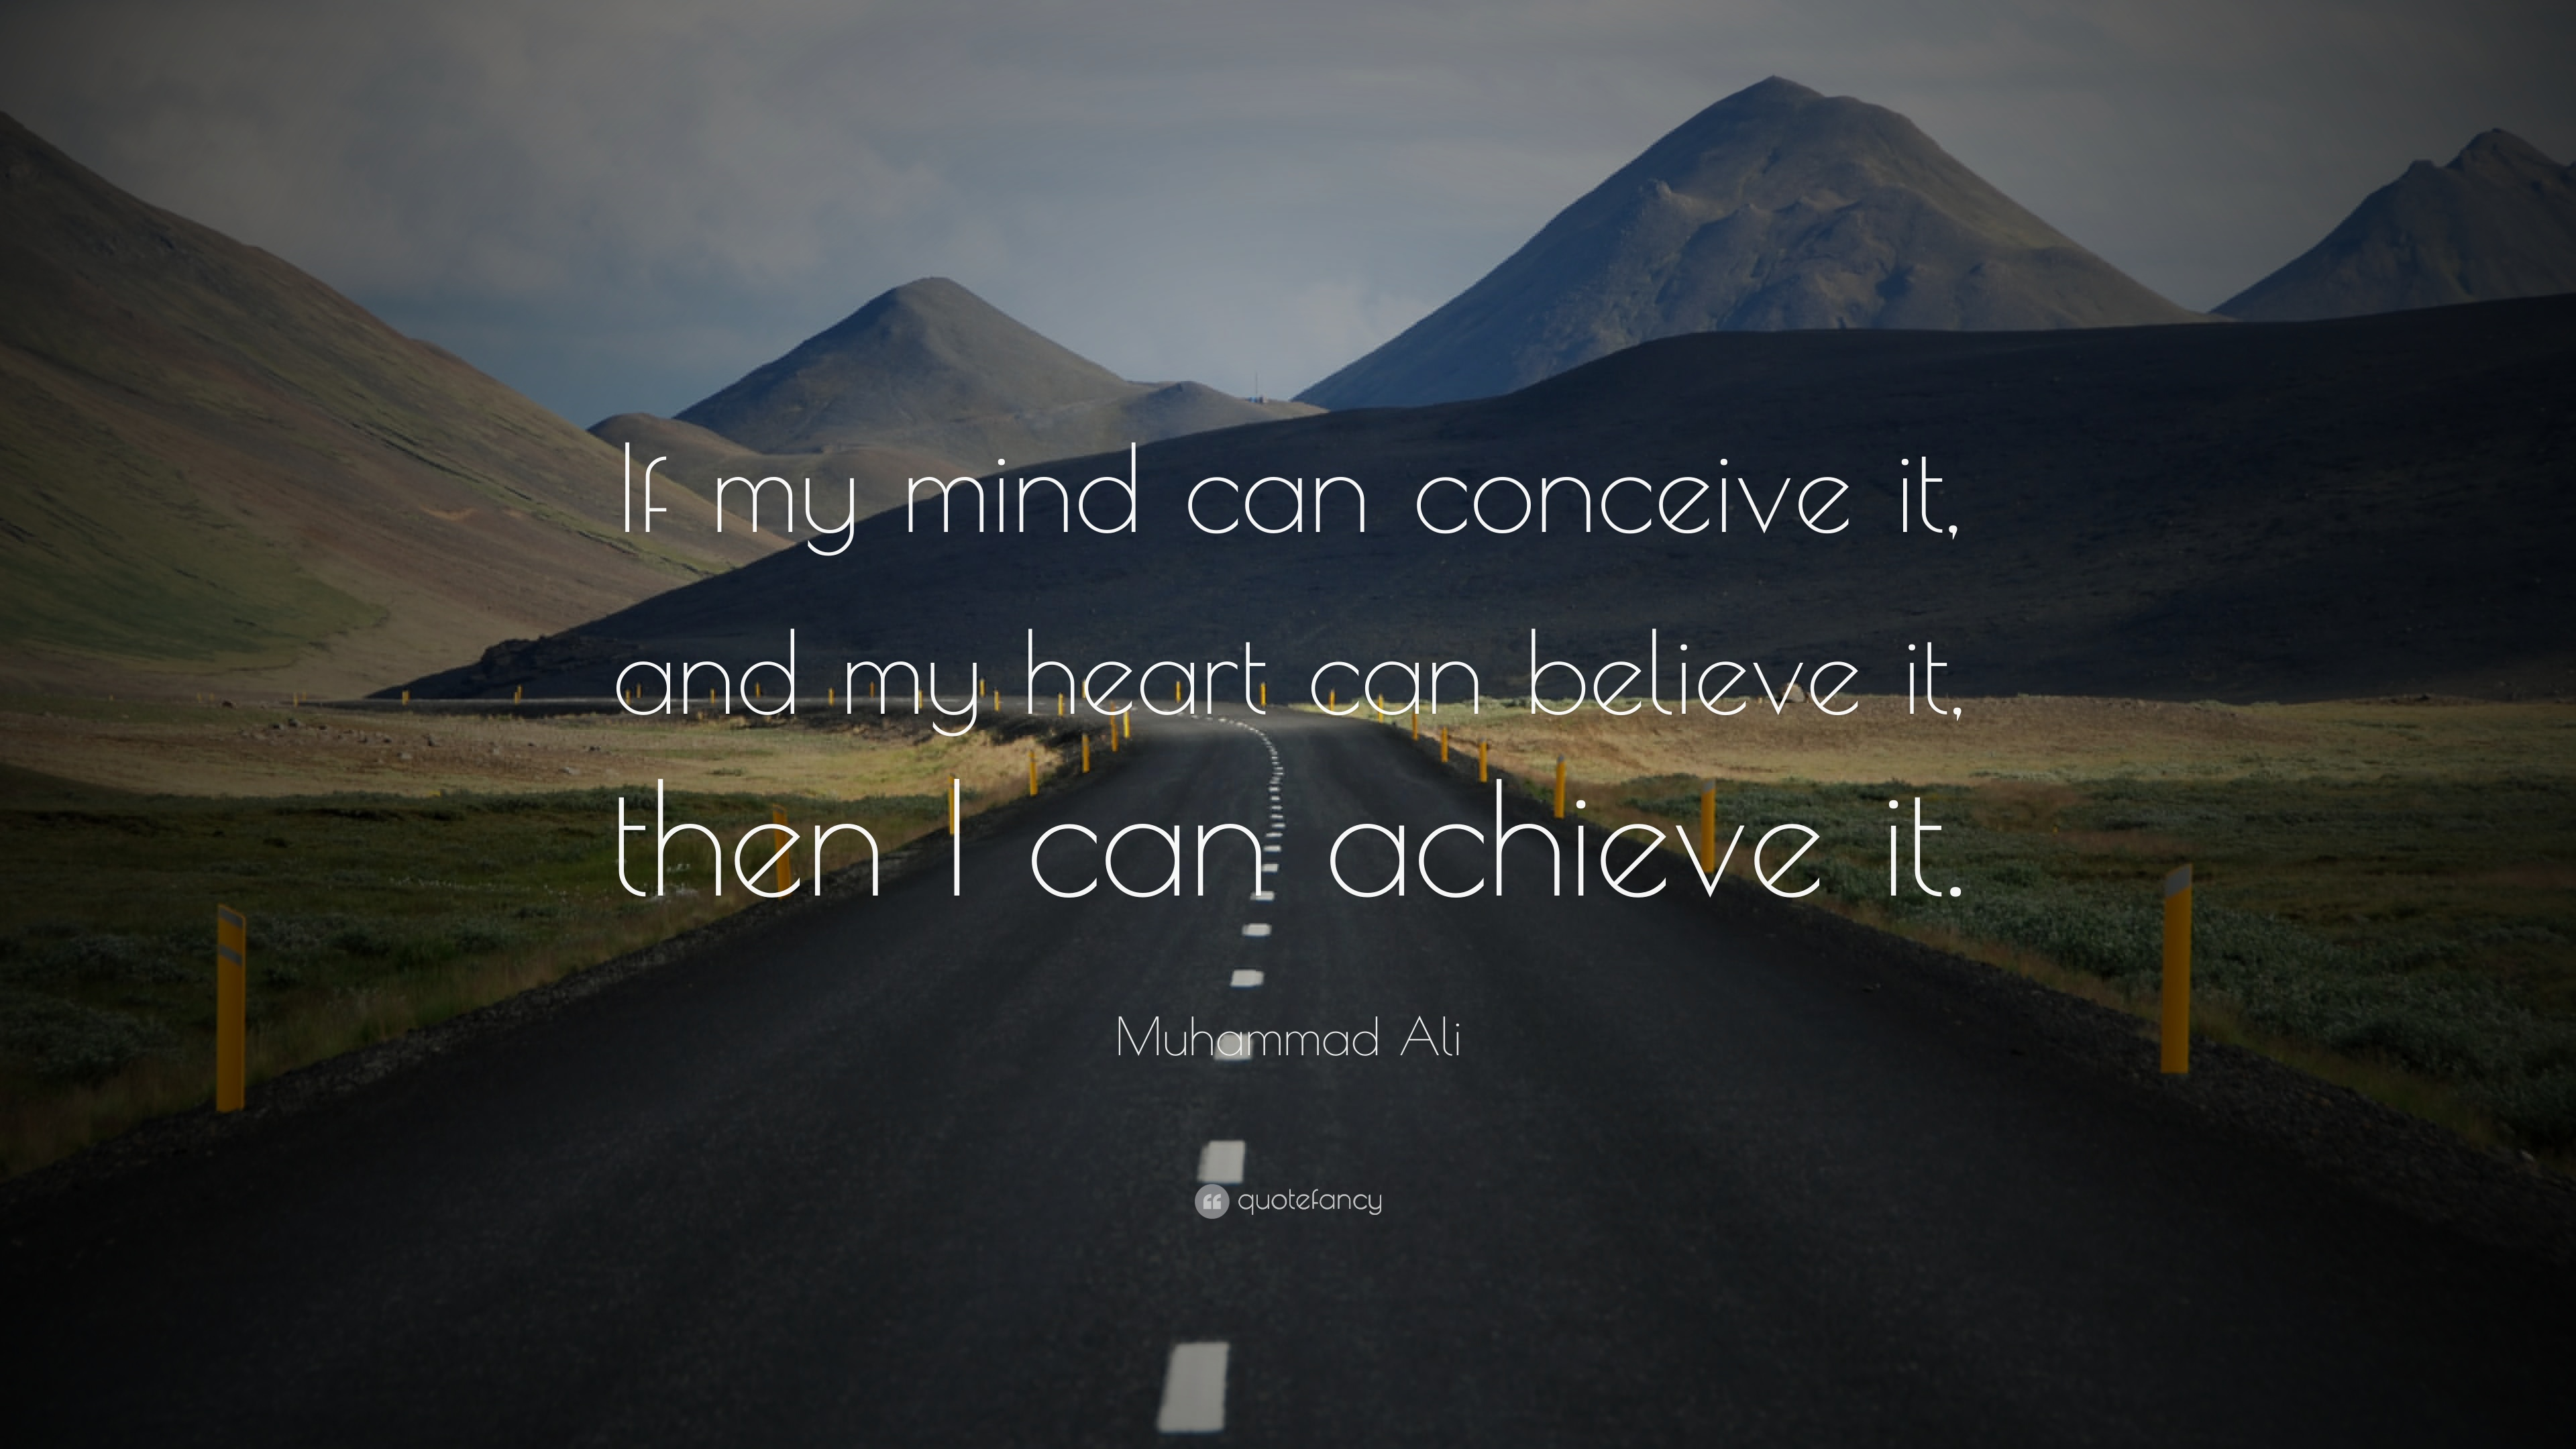 muhammad ali quote if my mind can conceive it and my heart can